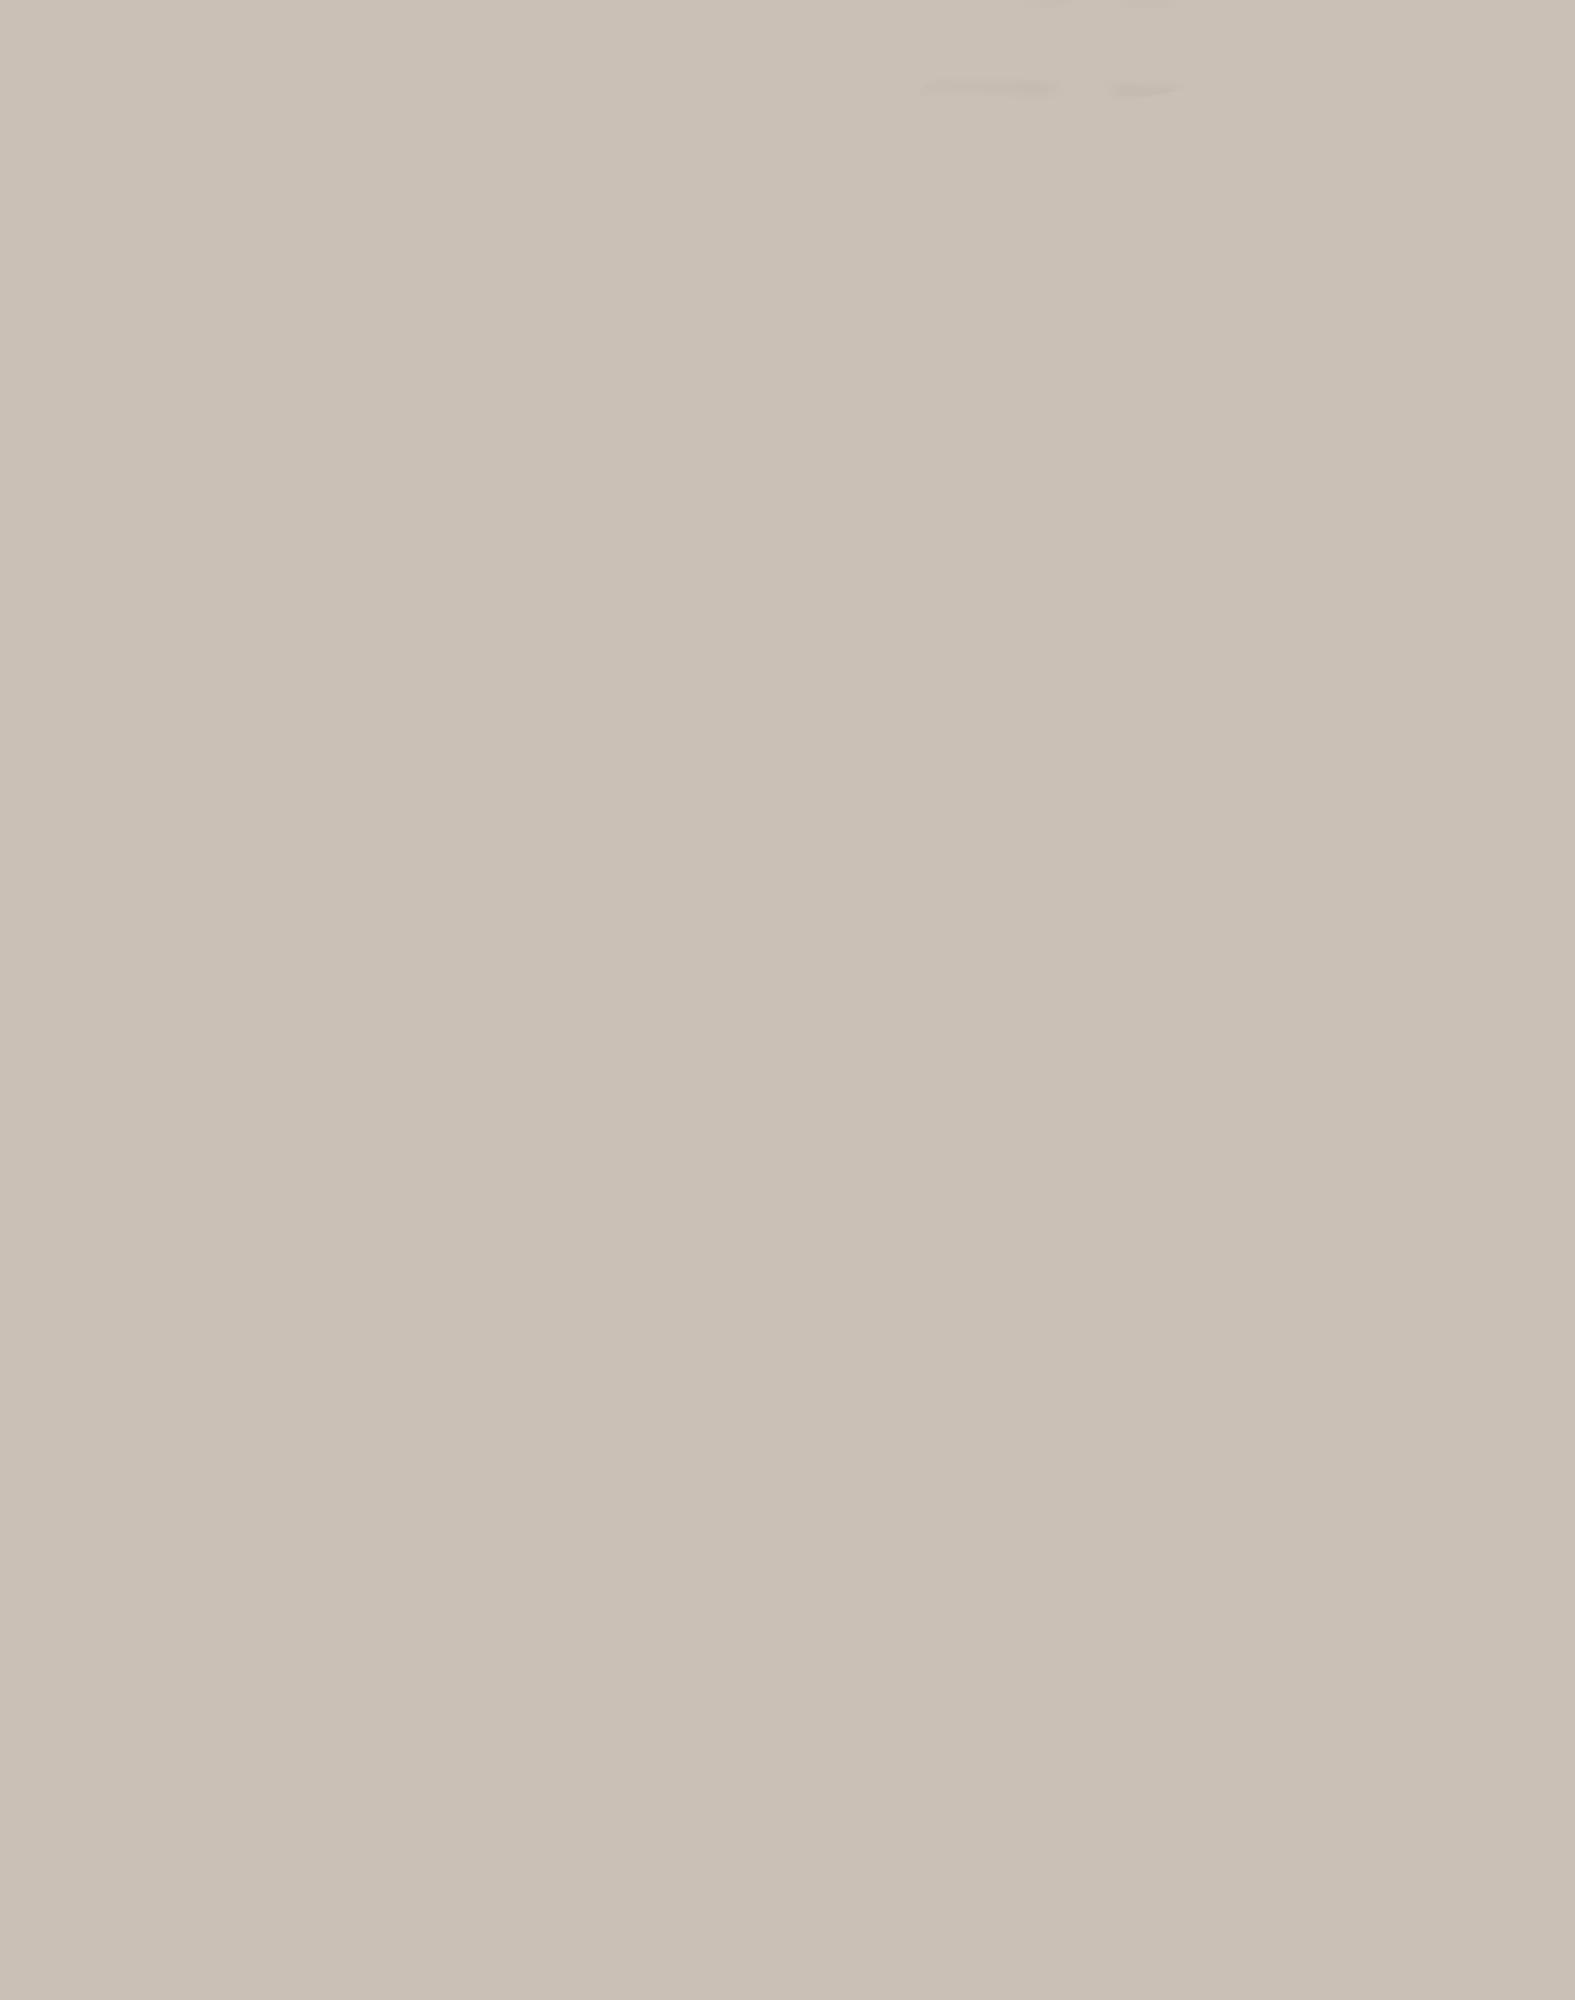 Taupe Delight 203,192,181